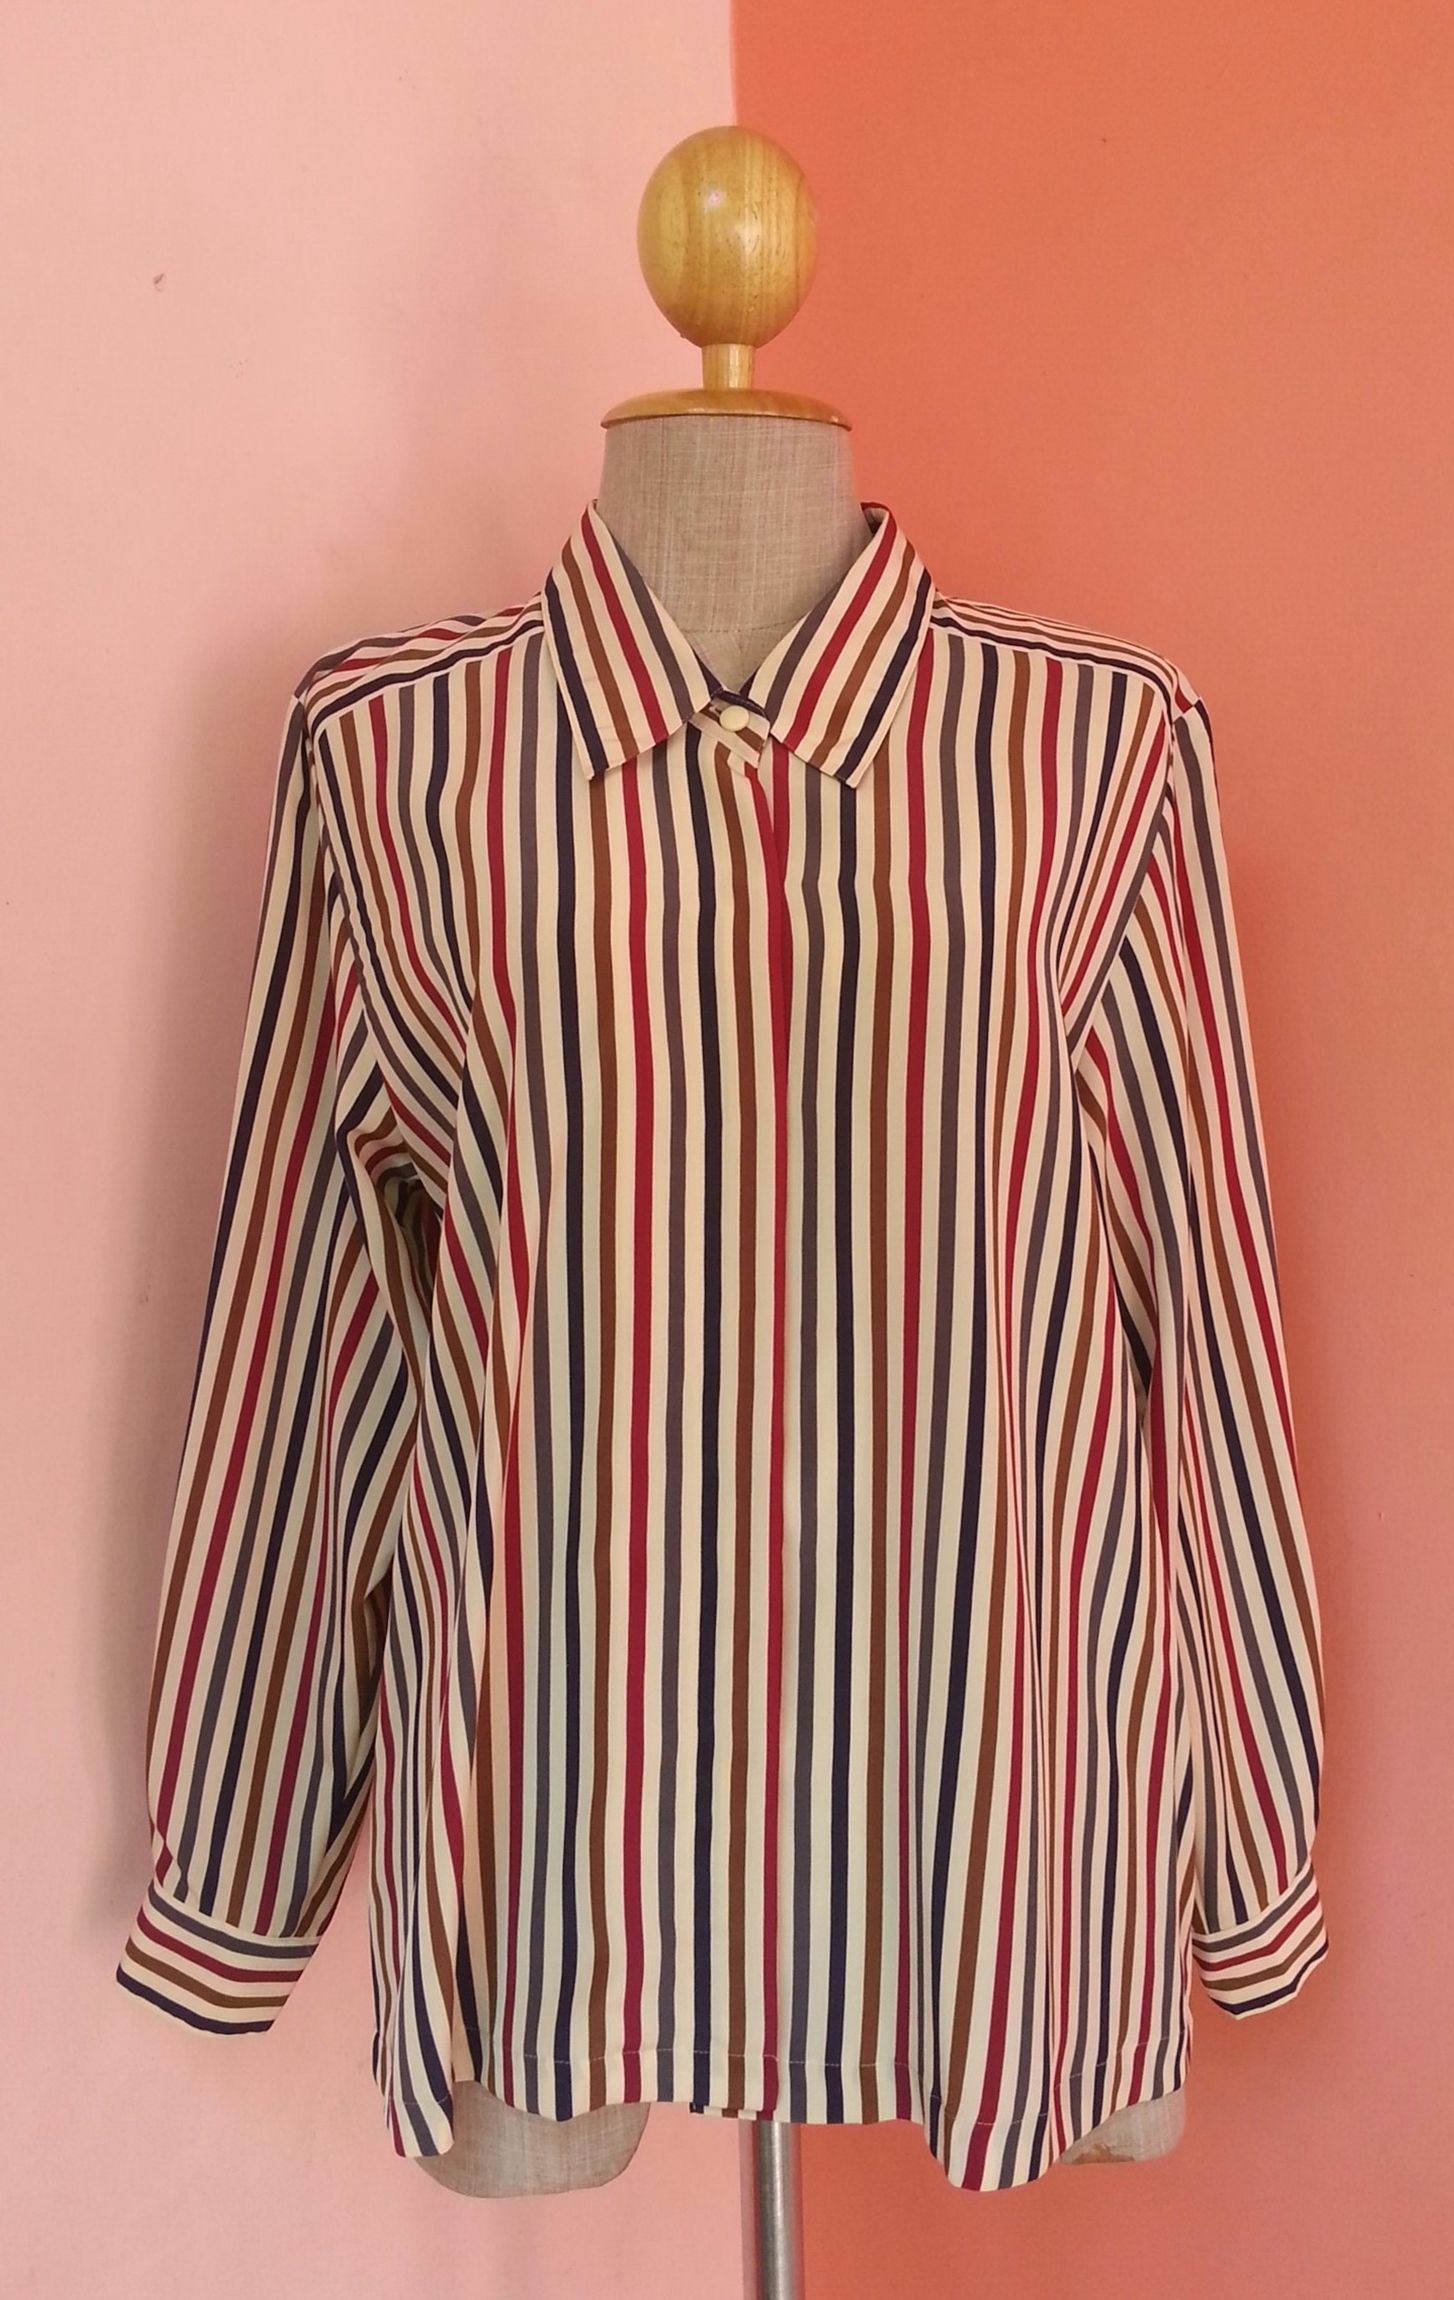 c87c5c39480e3 PIERRE BALMAIN Striped Shirt Large